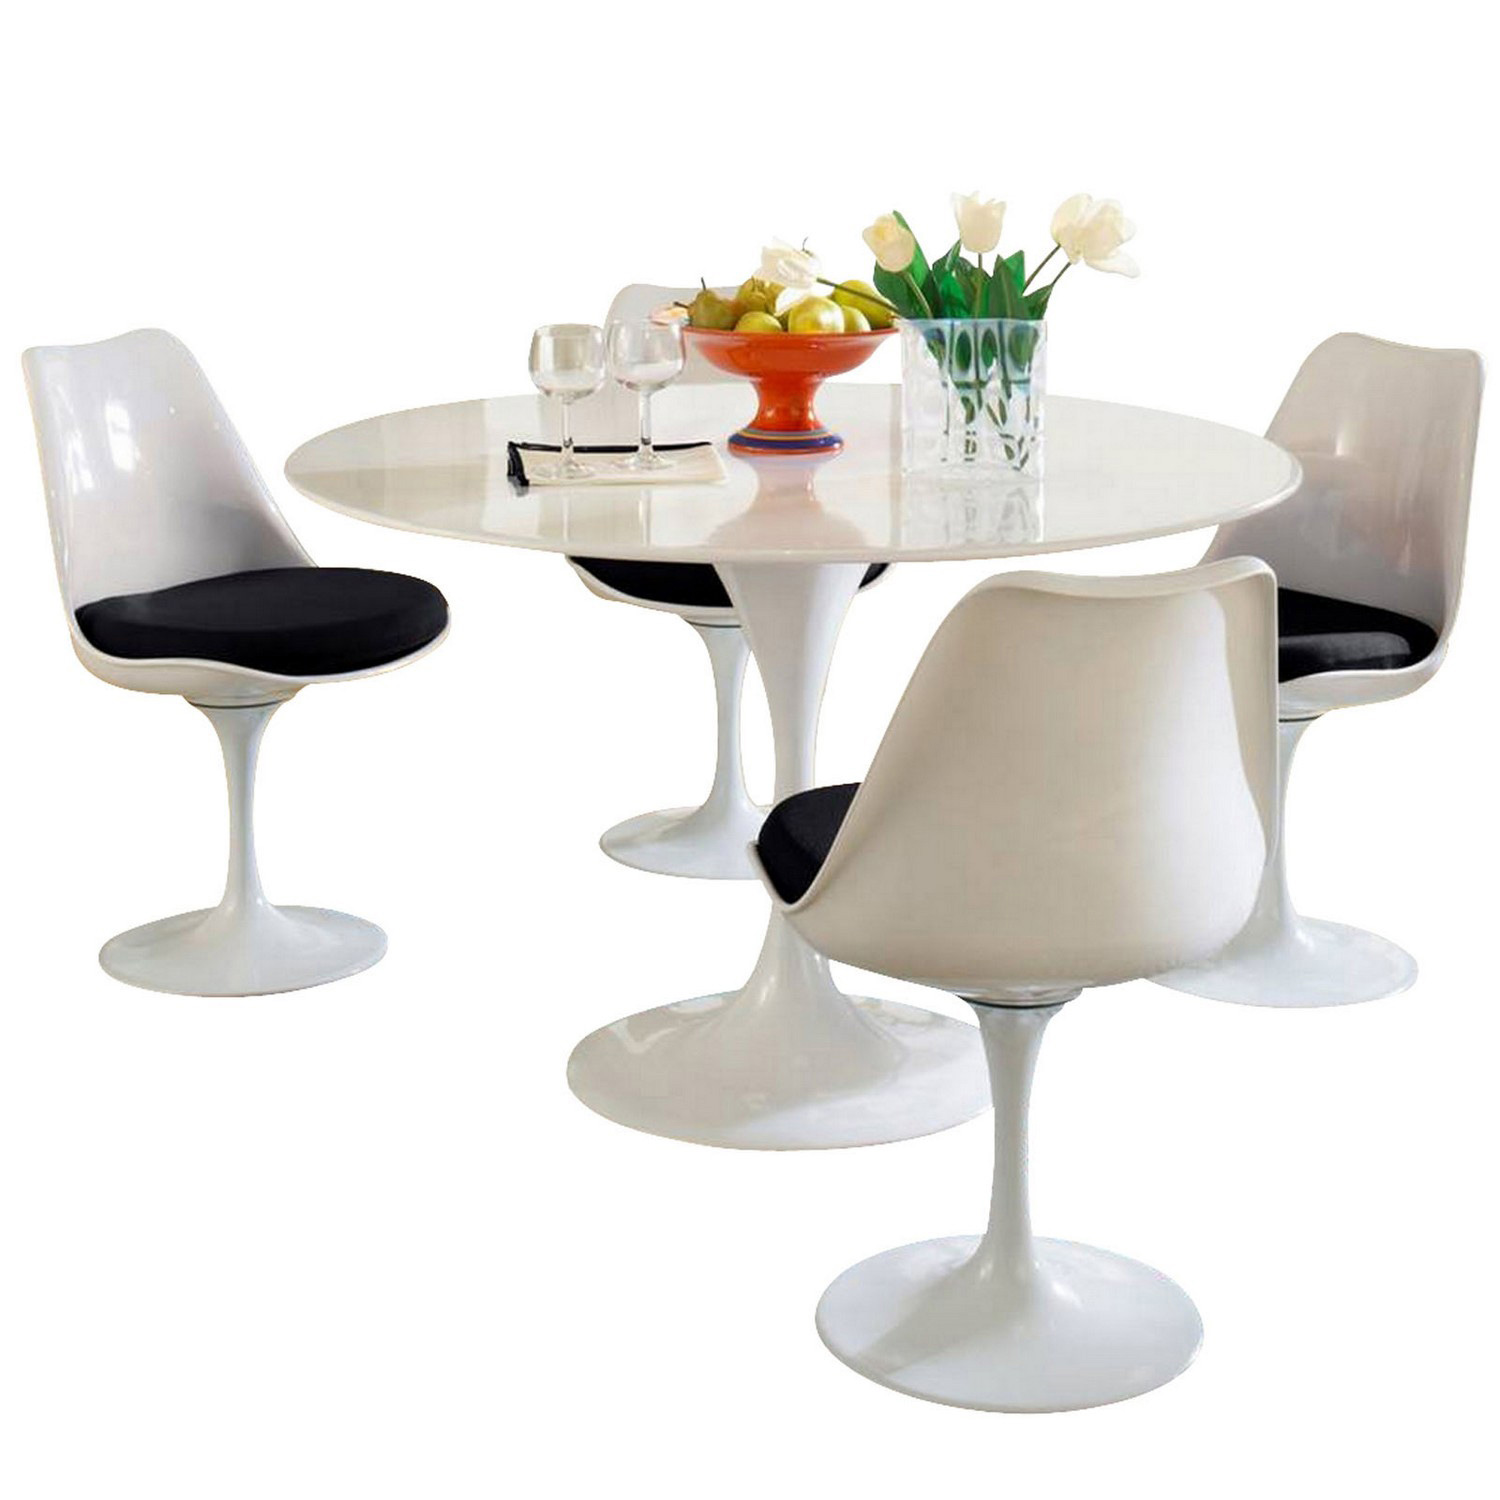 Modway Lippa 5 Piece Fiberglass Dining Set - Black